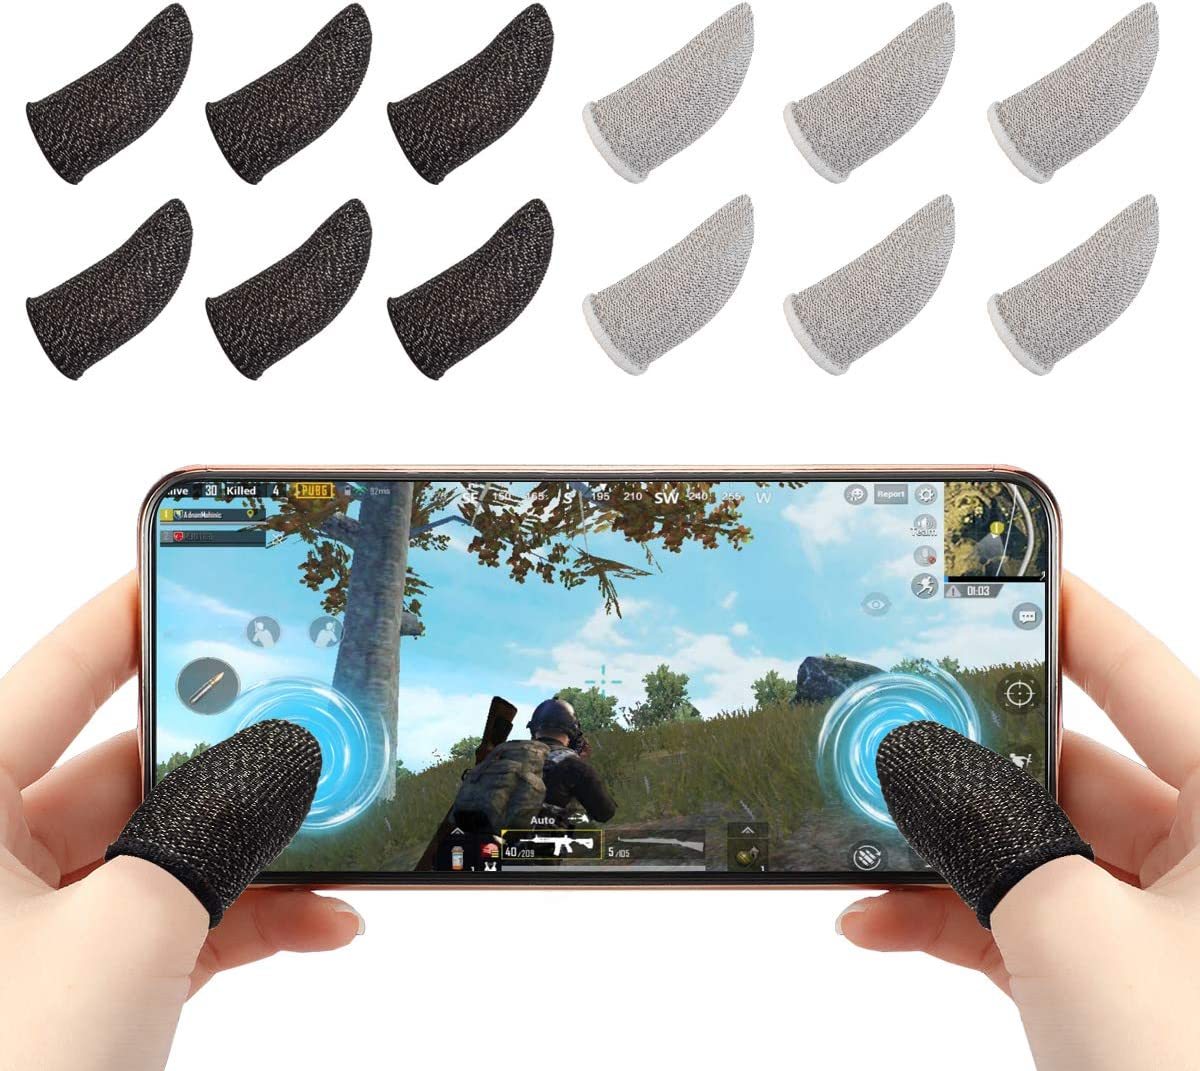 Mobile Game Controller Finger Sleeve Sets 1 Pair Anti-Sweat Breathable Full Touch Screen Sensitive Shoot Aim Joysticks Finger Set for PUBG//Knives Out//Rules of Survival